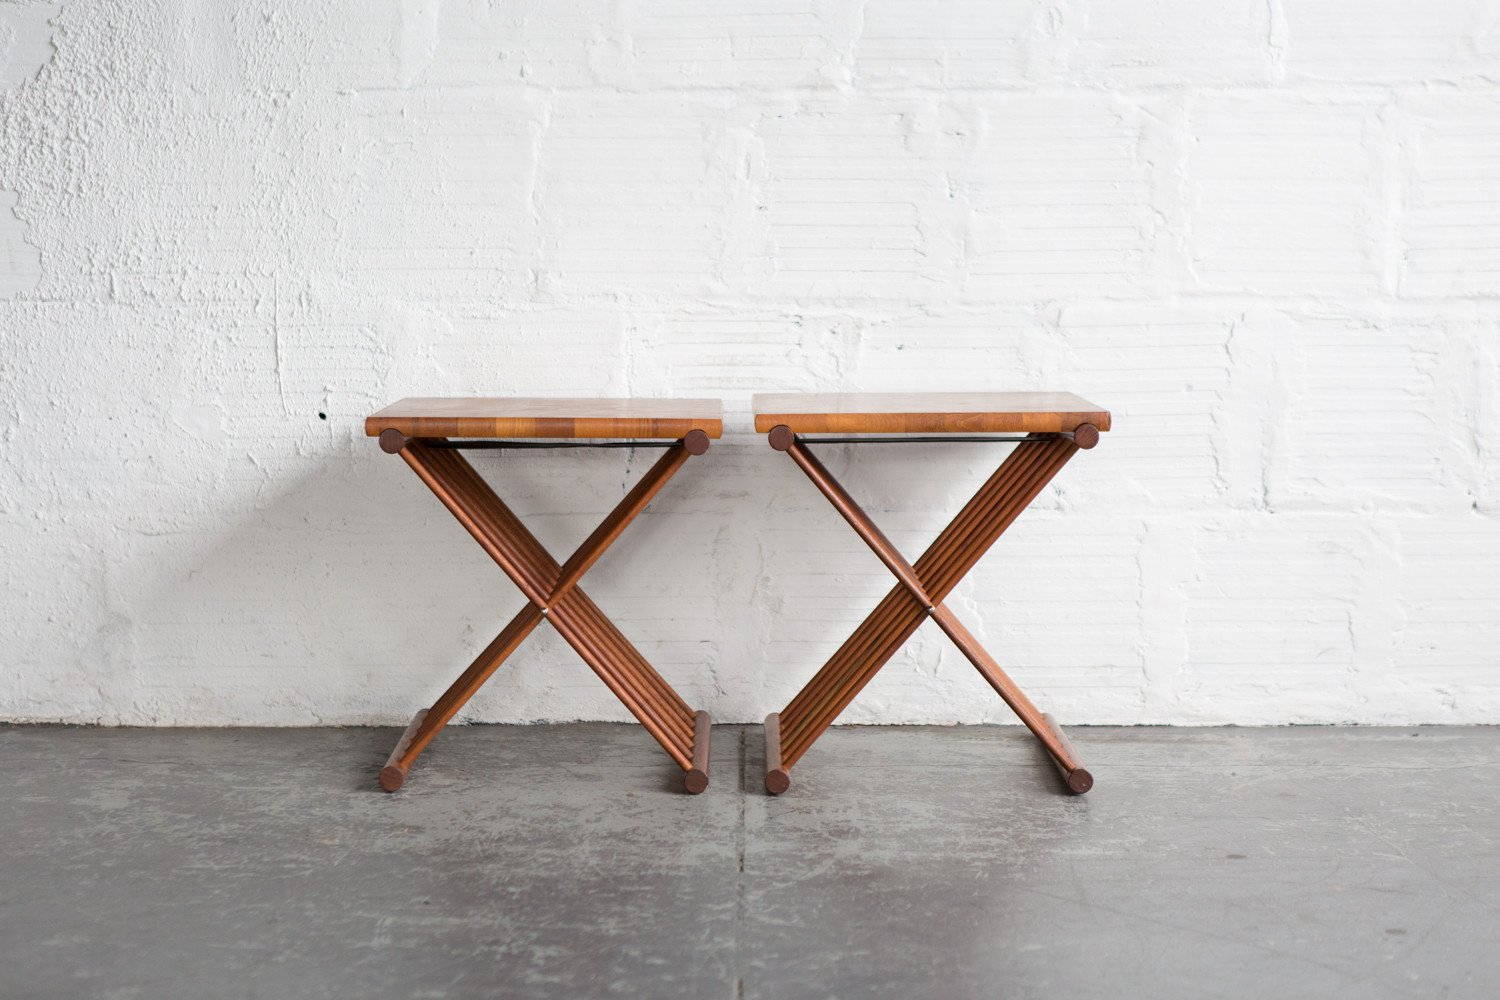 teak folding end table set the good mod tray spindle wood accent small black glass office wall cabinets target furniture coffee keter drinks spring haven round mats three piece